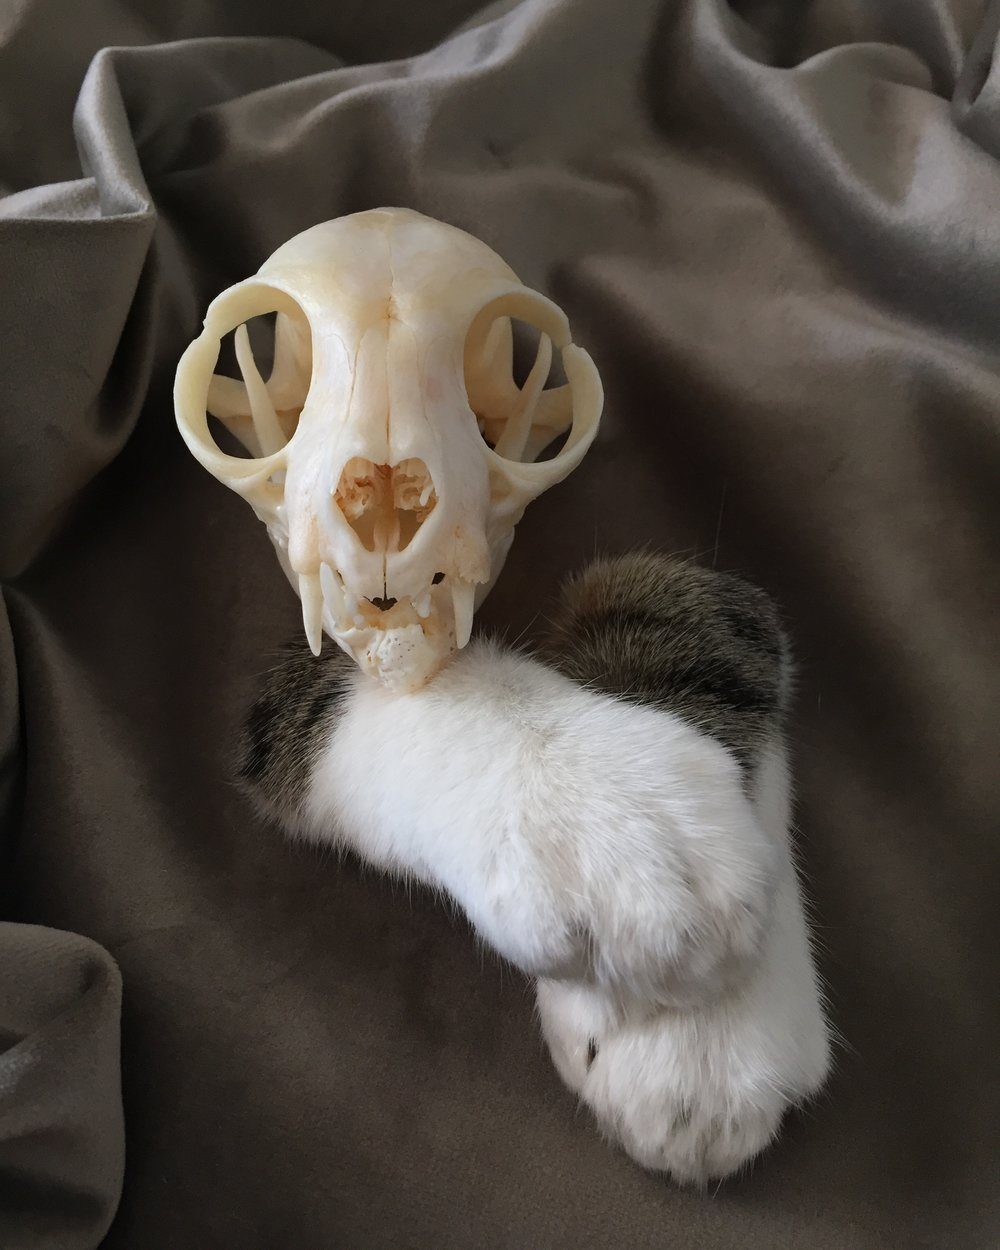 Nermal; Skull Cleaning and Paw Preservation